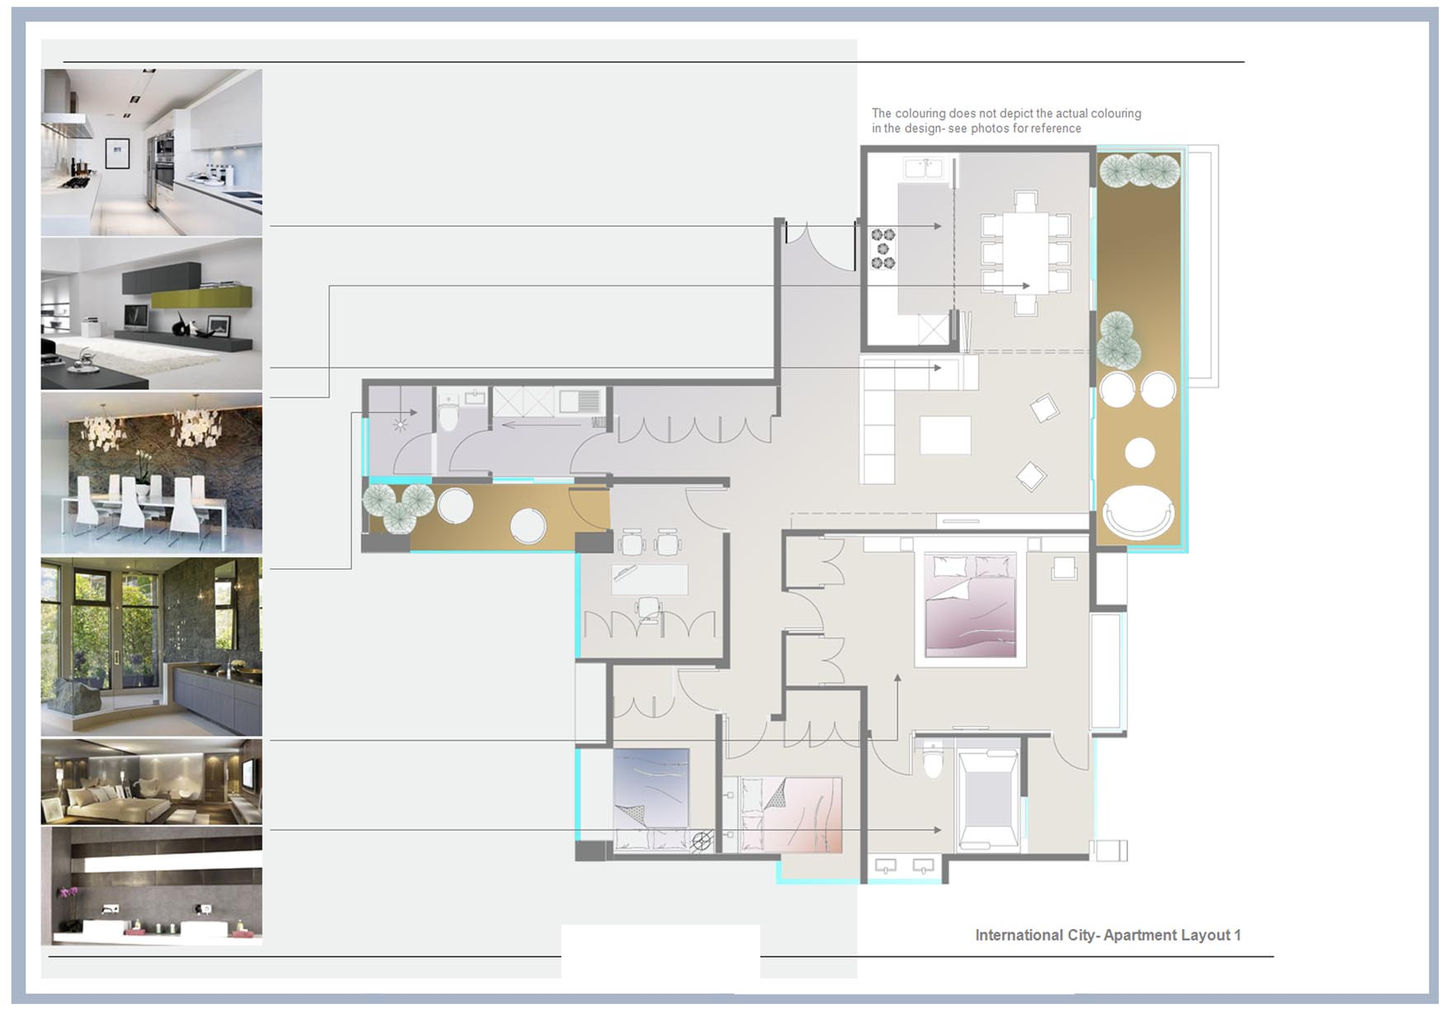 85 Interior Design Spatial Planning Office Space